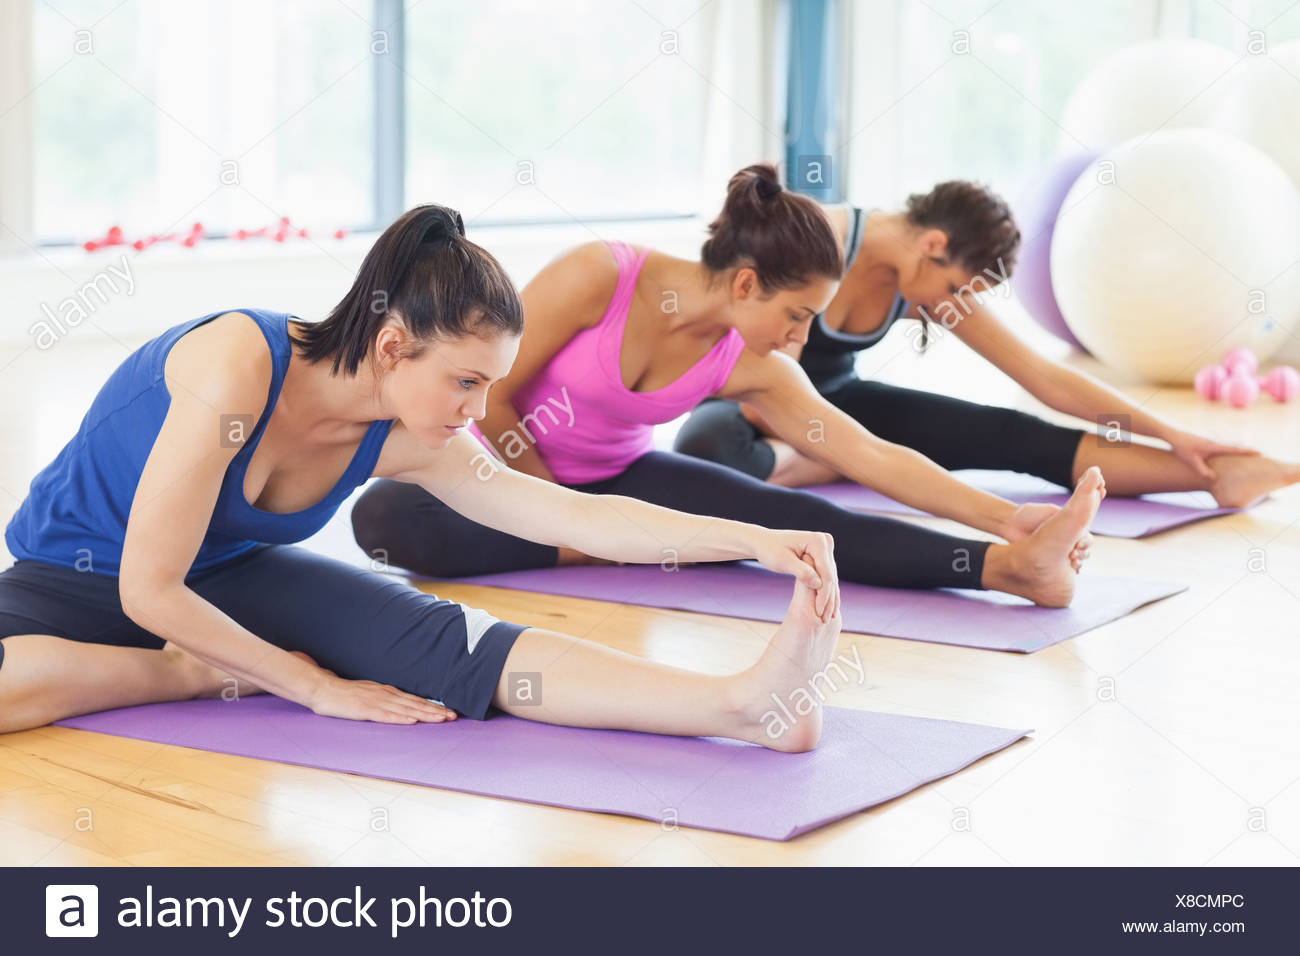 Fit class stretching legs on mats at yoga class Stock Photo